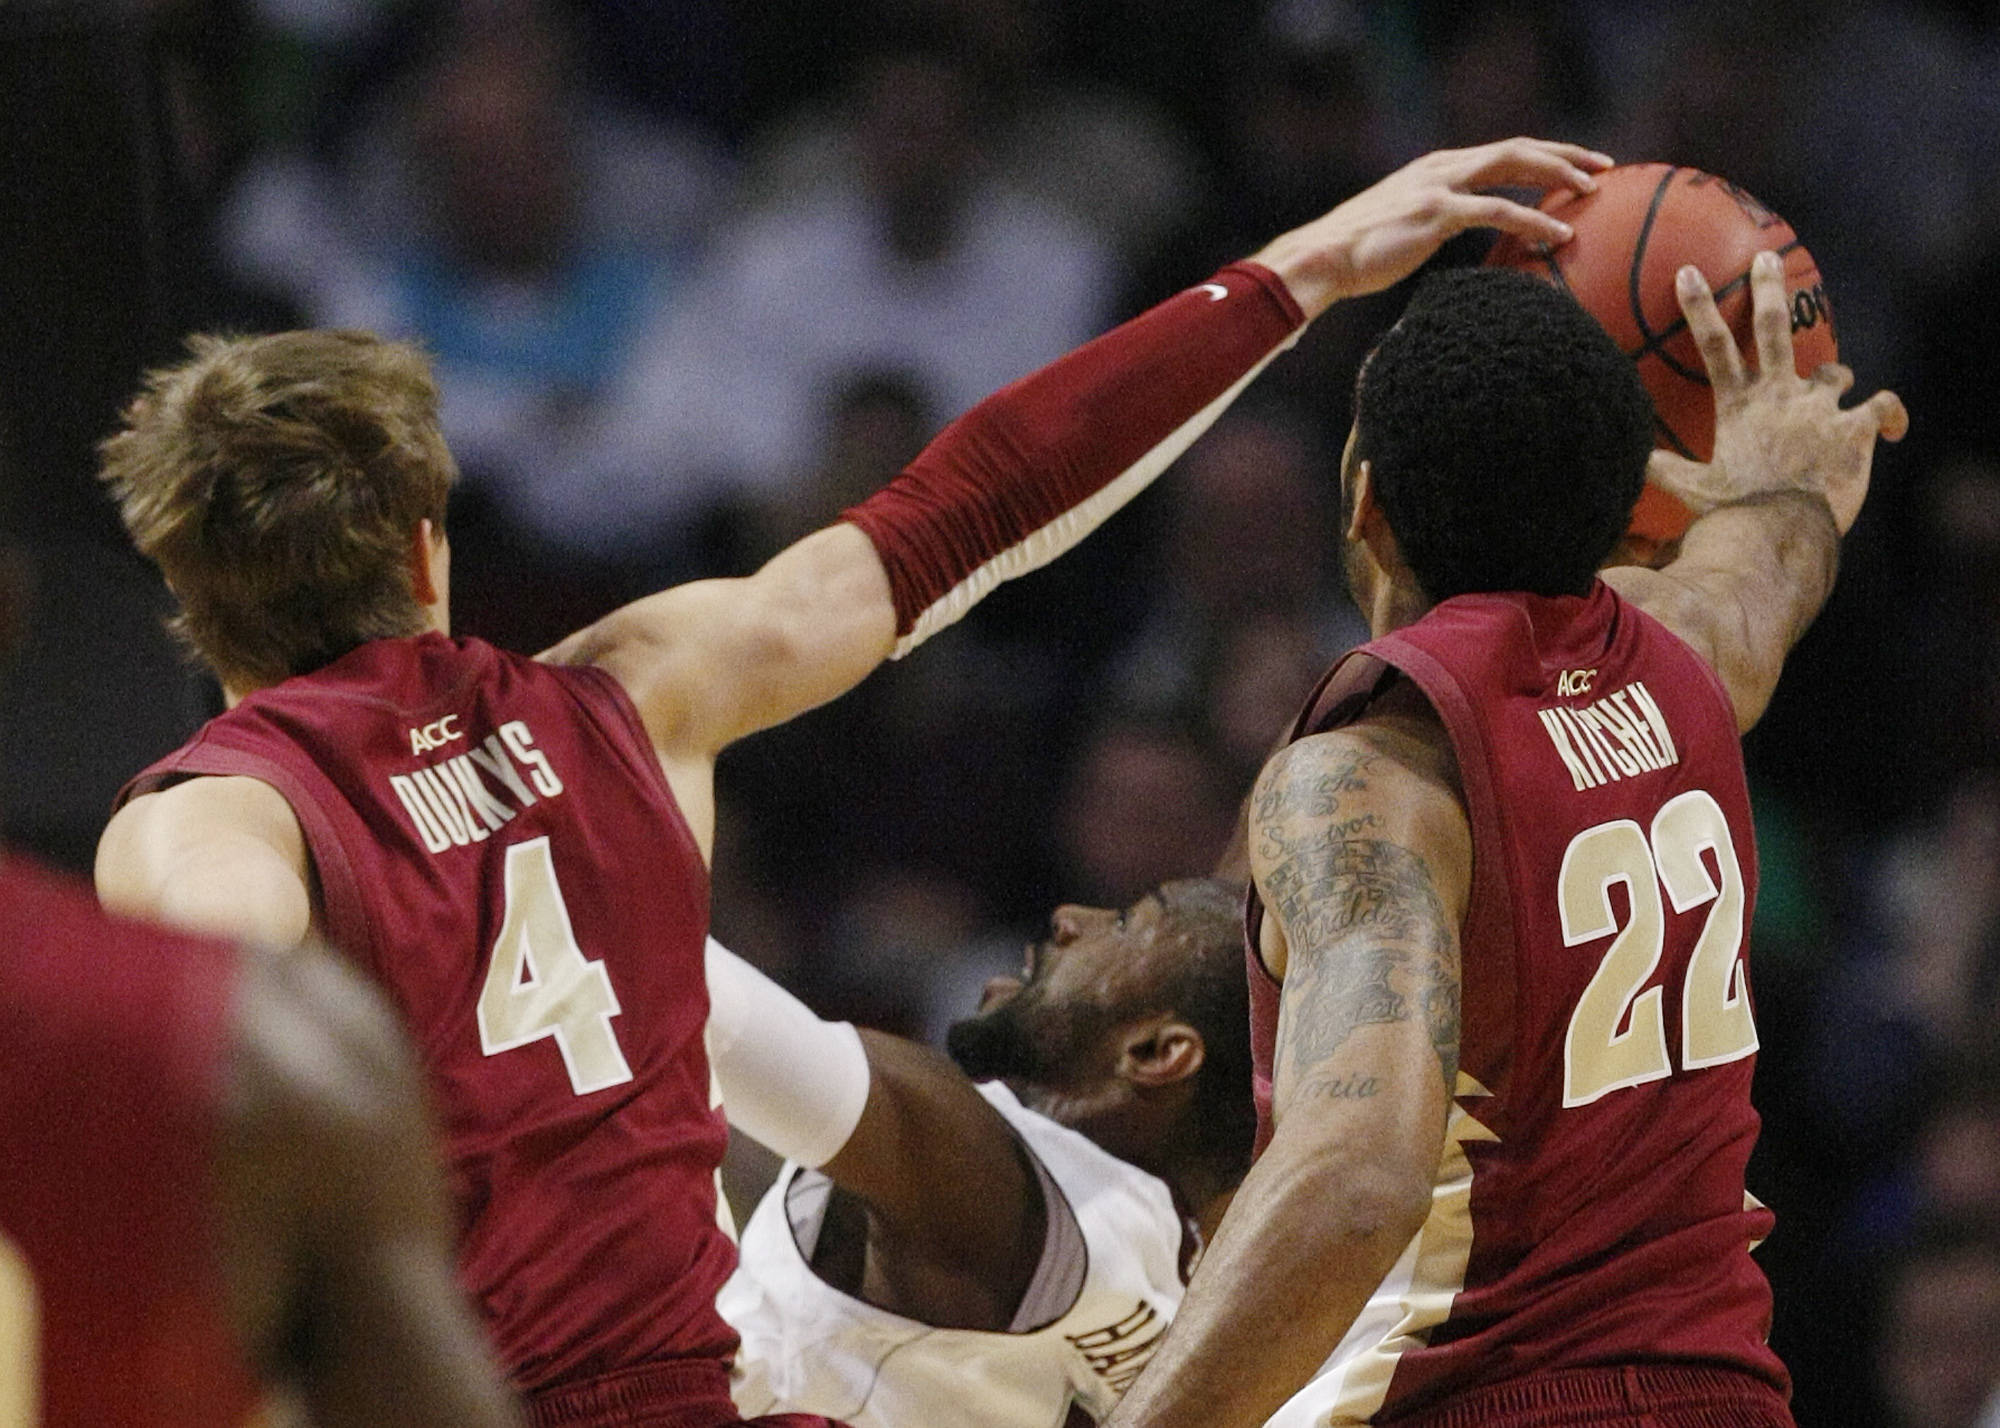 Florida State defenders Deividas Dulkys of Lithuania and Derwin Kitchen combine to block a shot by Texas A&M's Dash Harris in the first half. (AP Photo/Charles Rex Arbogast)